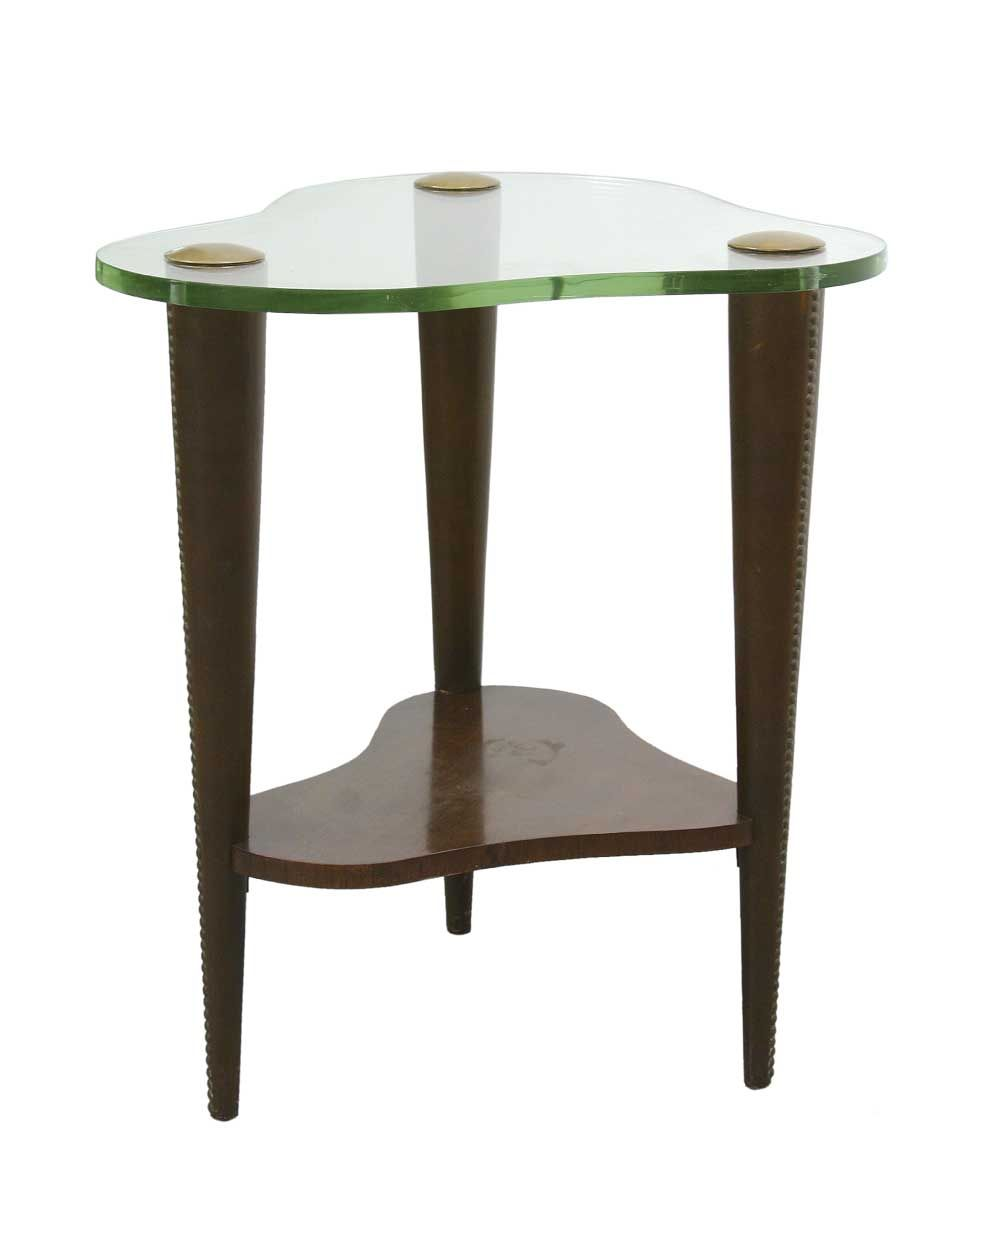 Early hall table with organic shaped glass top on leather wrapped wooden legs. By Gilbert Rohde for Herman Miller, USA, circa 1939.